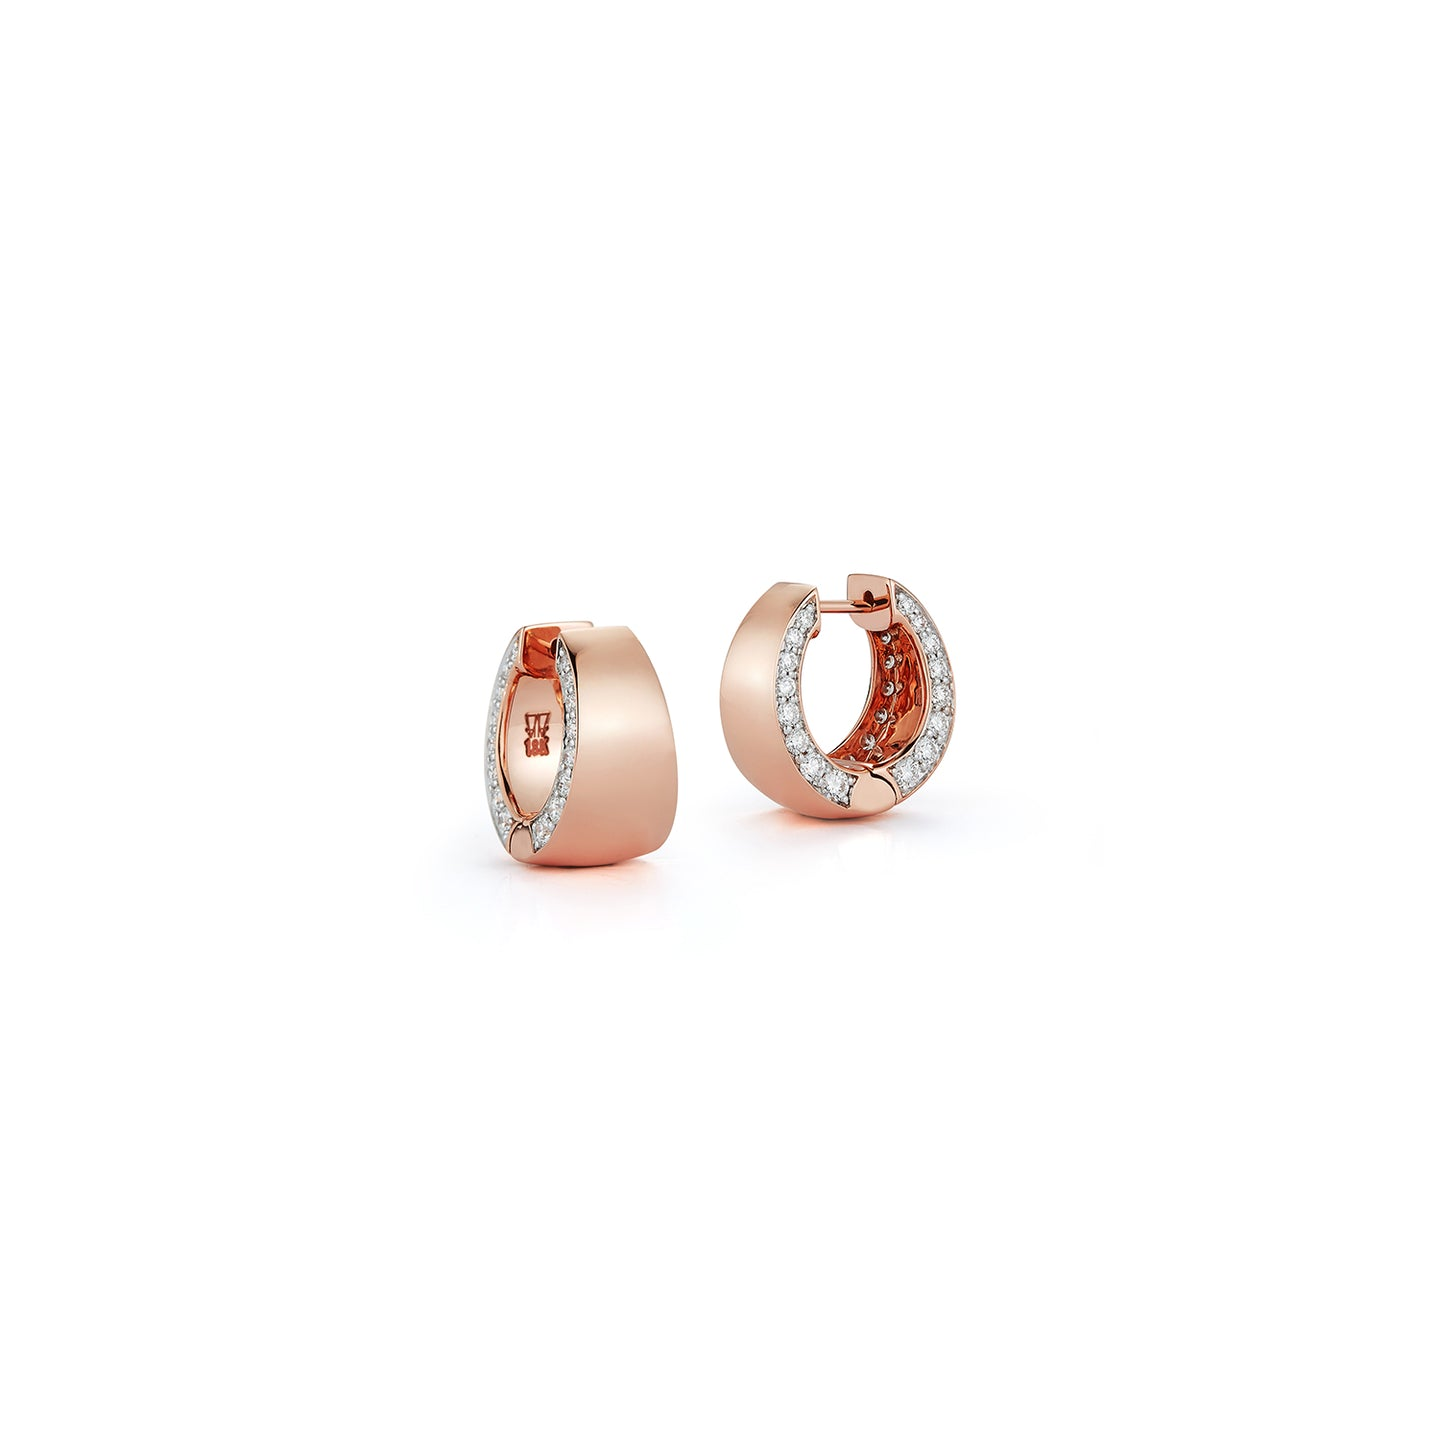 LYTTON 18K ROSE GOLD HOOP WITH DIAMOND EDGE EARRING